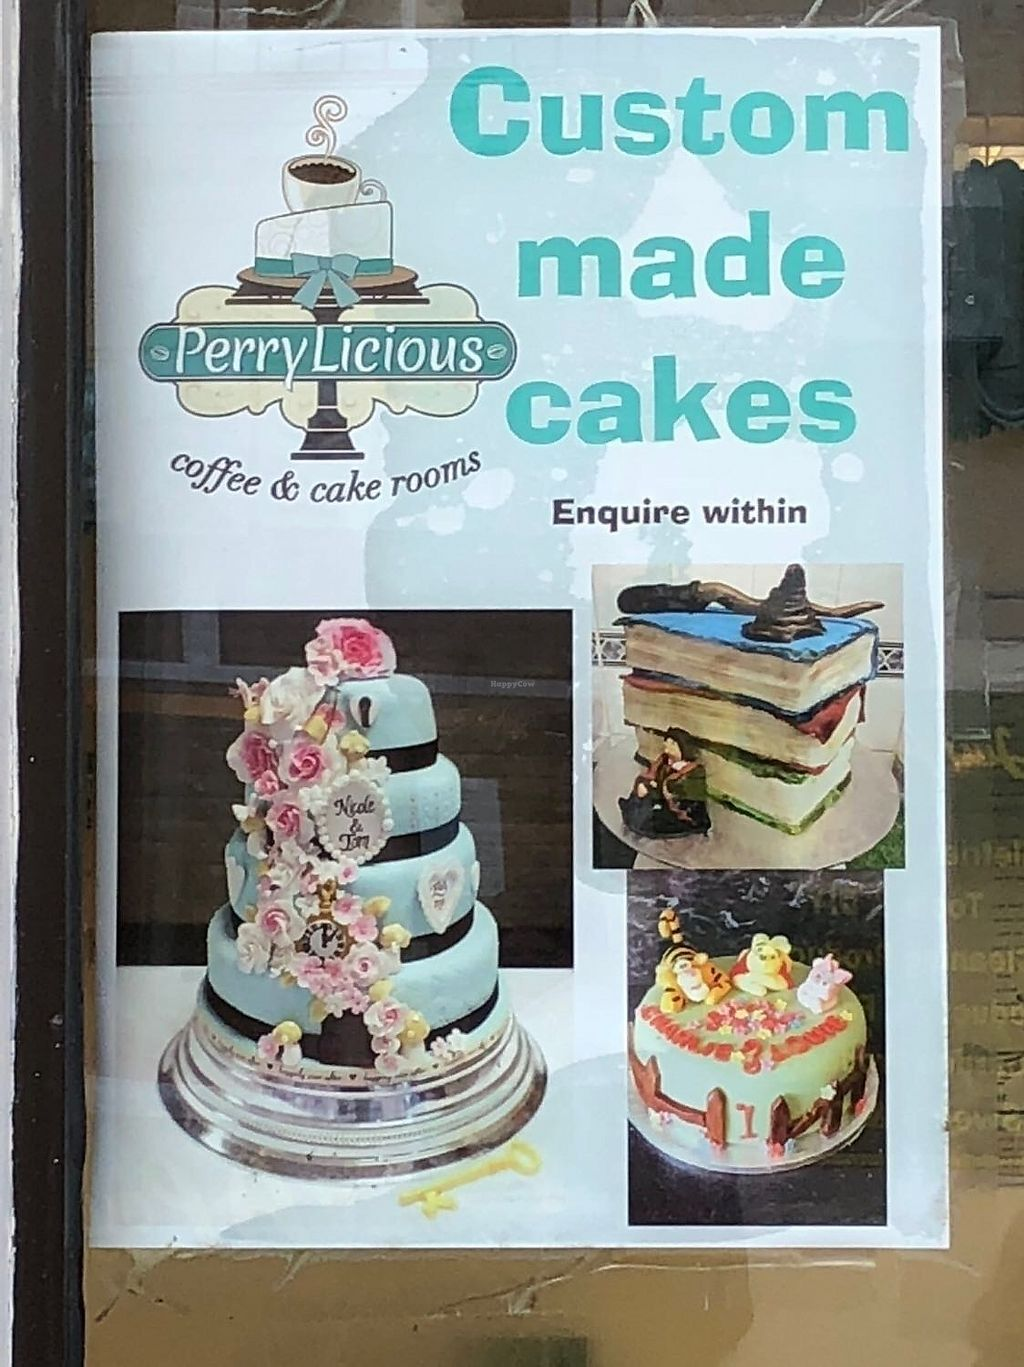 """Photo of PerryLicious Coffee and Cake Rooms  by <a href=""""/members/profile/drgemgem"""">drgemgem</a> <br/>You can even order cakes! <br/> December 23, 2017  - <a href='/contact/abuse/image/73298/338463'>Report</a>"""